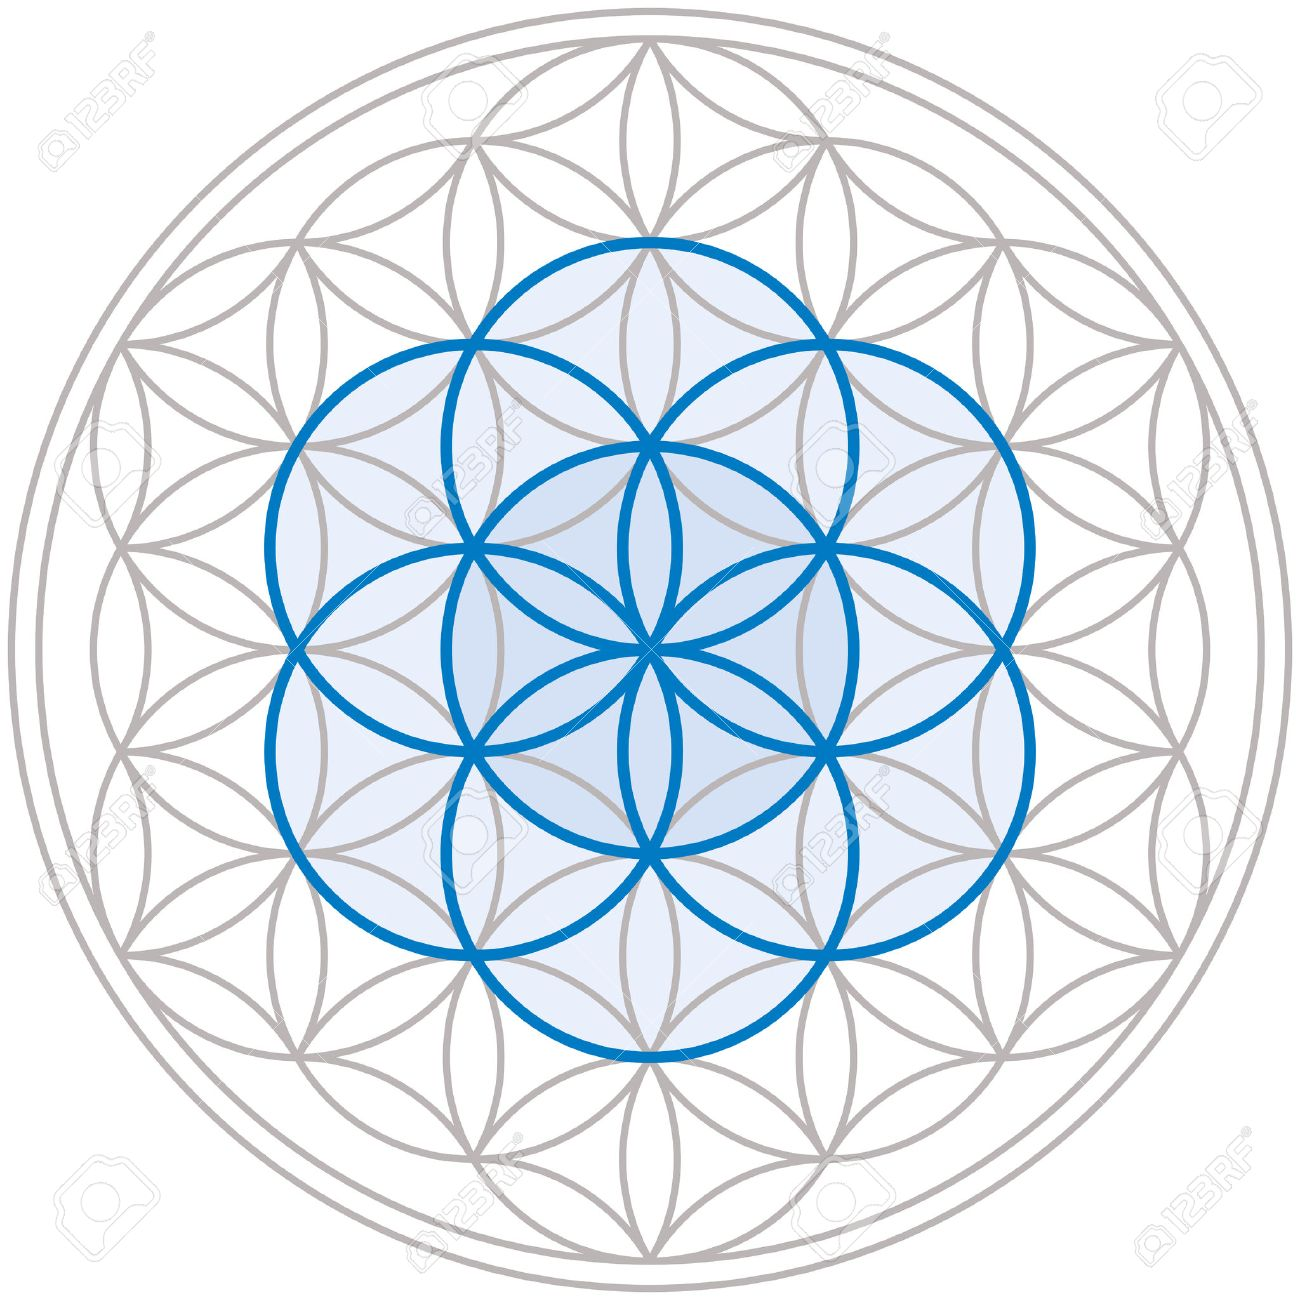 Seed of Life in the center of the Flower of Life, a geometrical figure, composed of multiple evenly-spaced, overlapping circles, forming a flower-like pattern Banque d'images - 27773456